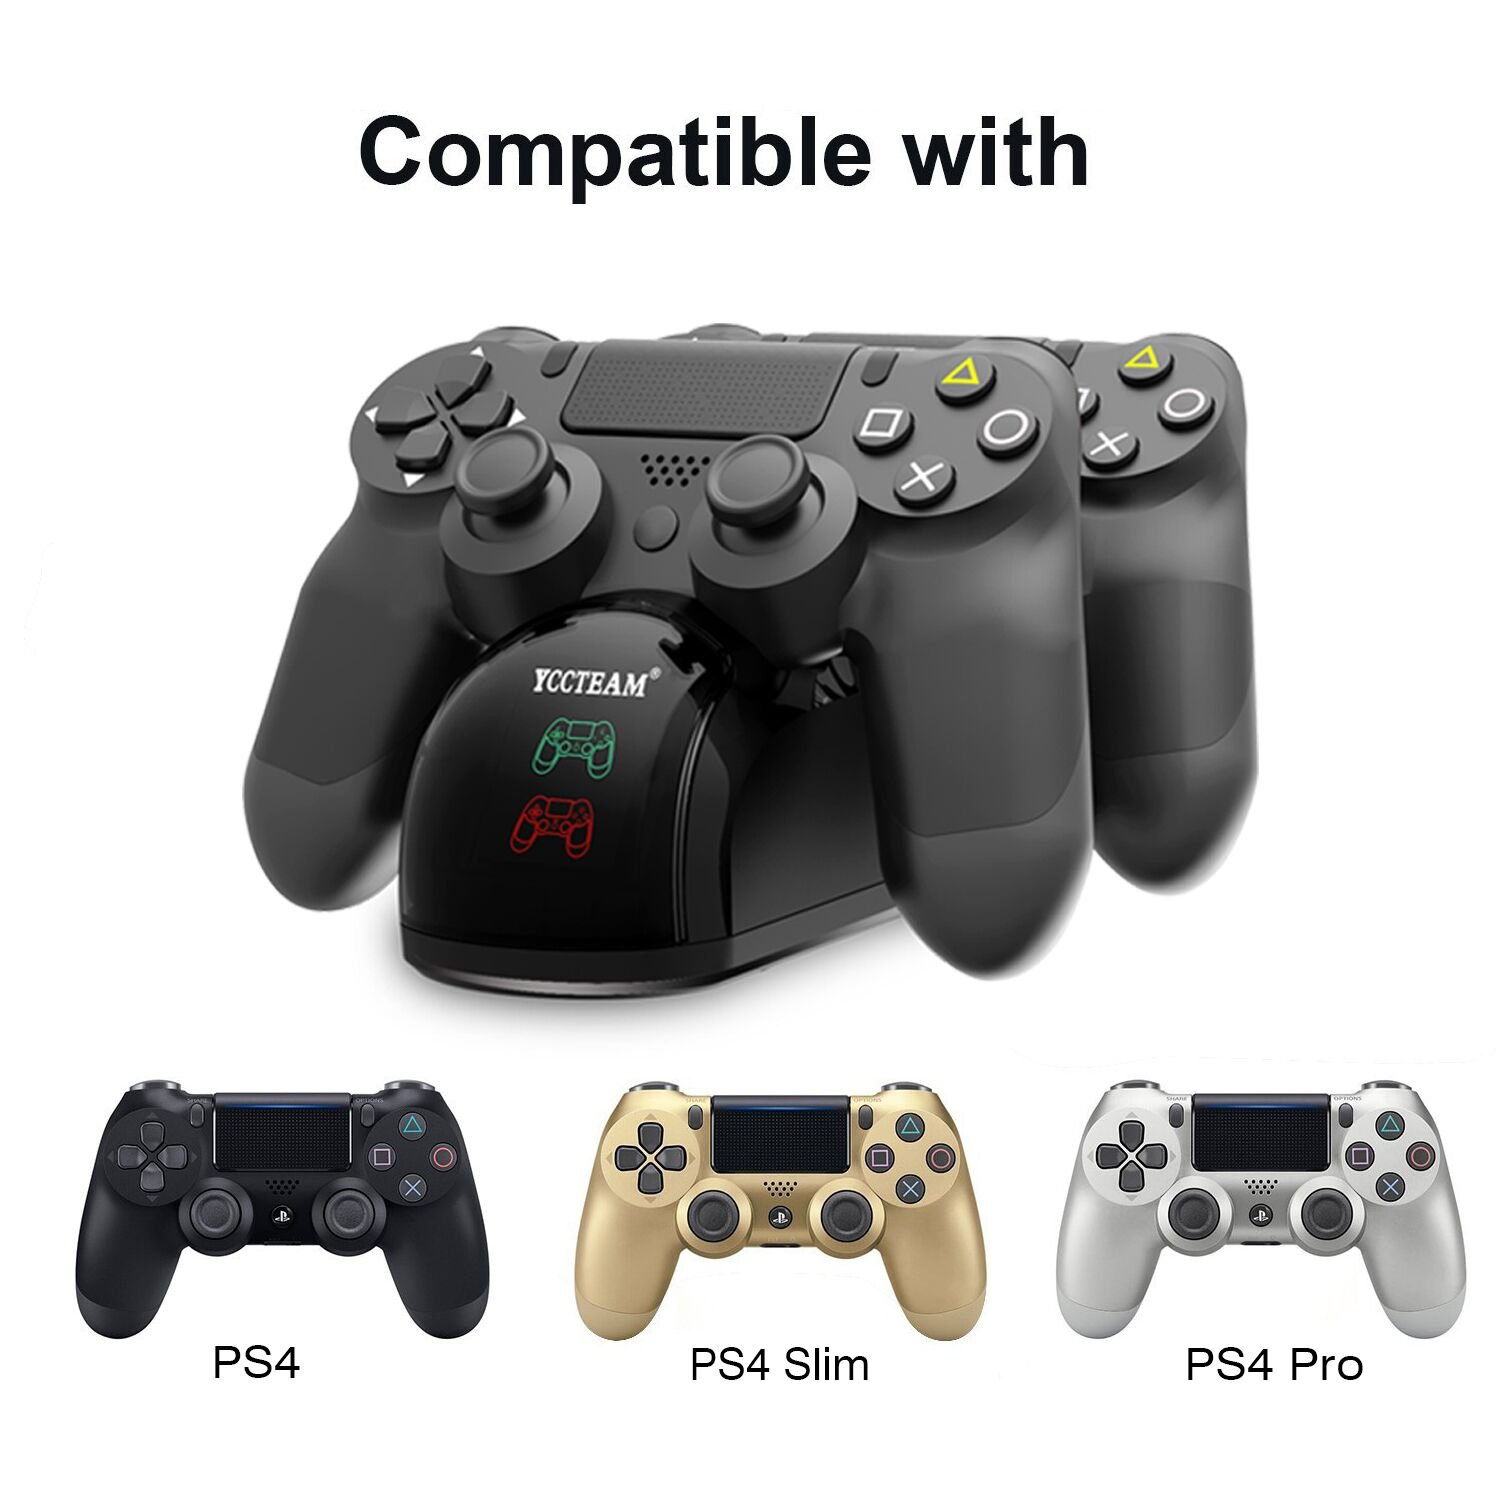 PS4 Controller Charger, Dual Shock USB Charger Charging Docking Station Stand for Sony Playstation 4 PS4/PS4 Slim/PS4 Pro Controller, Black